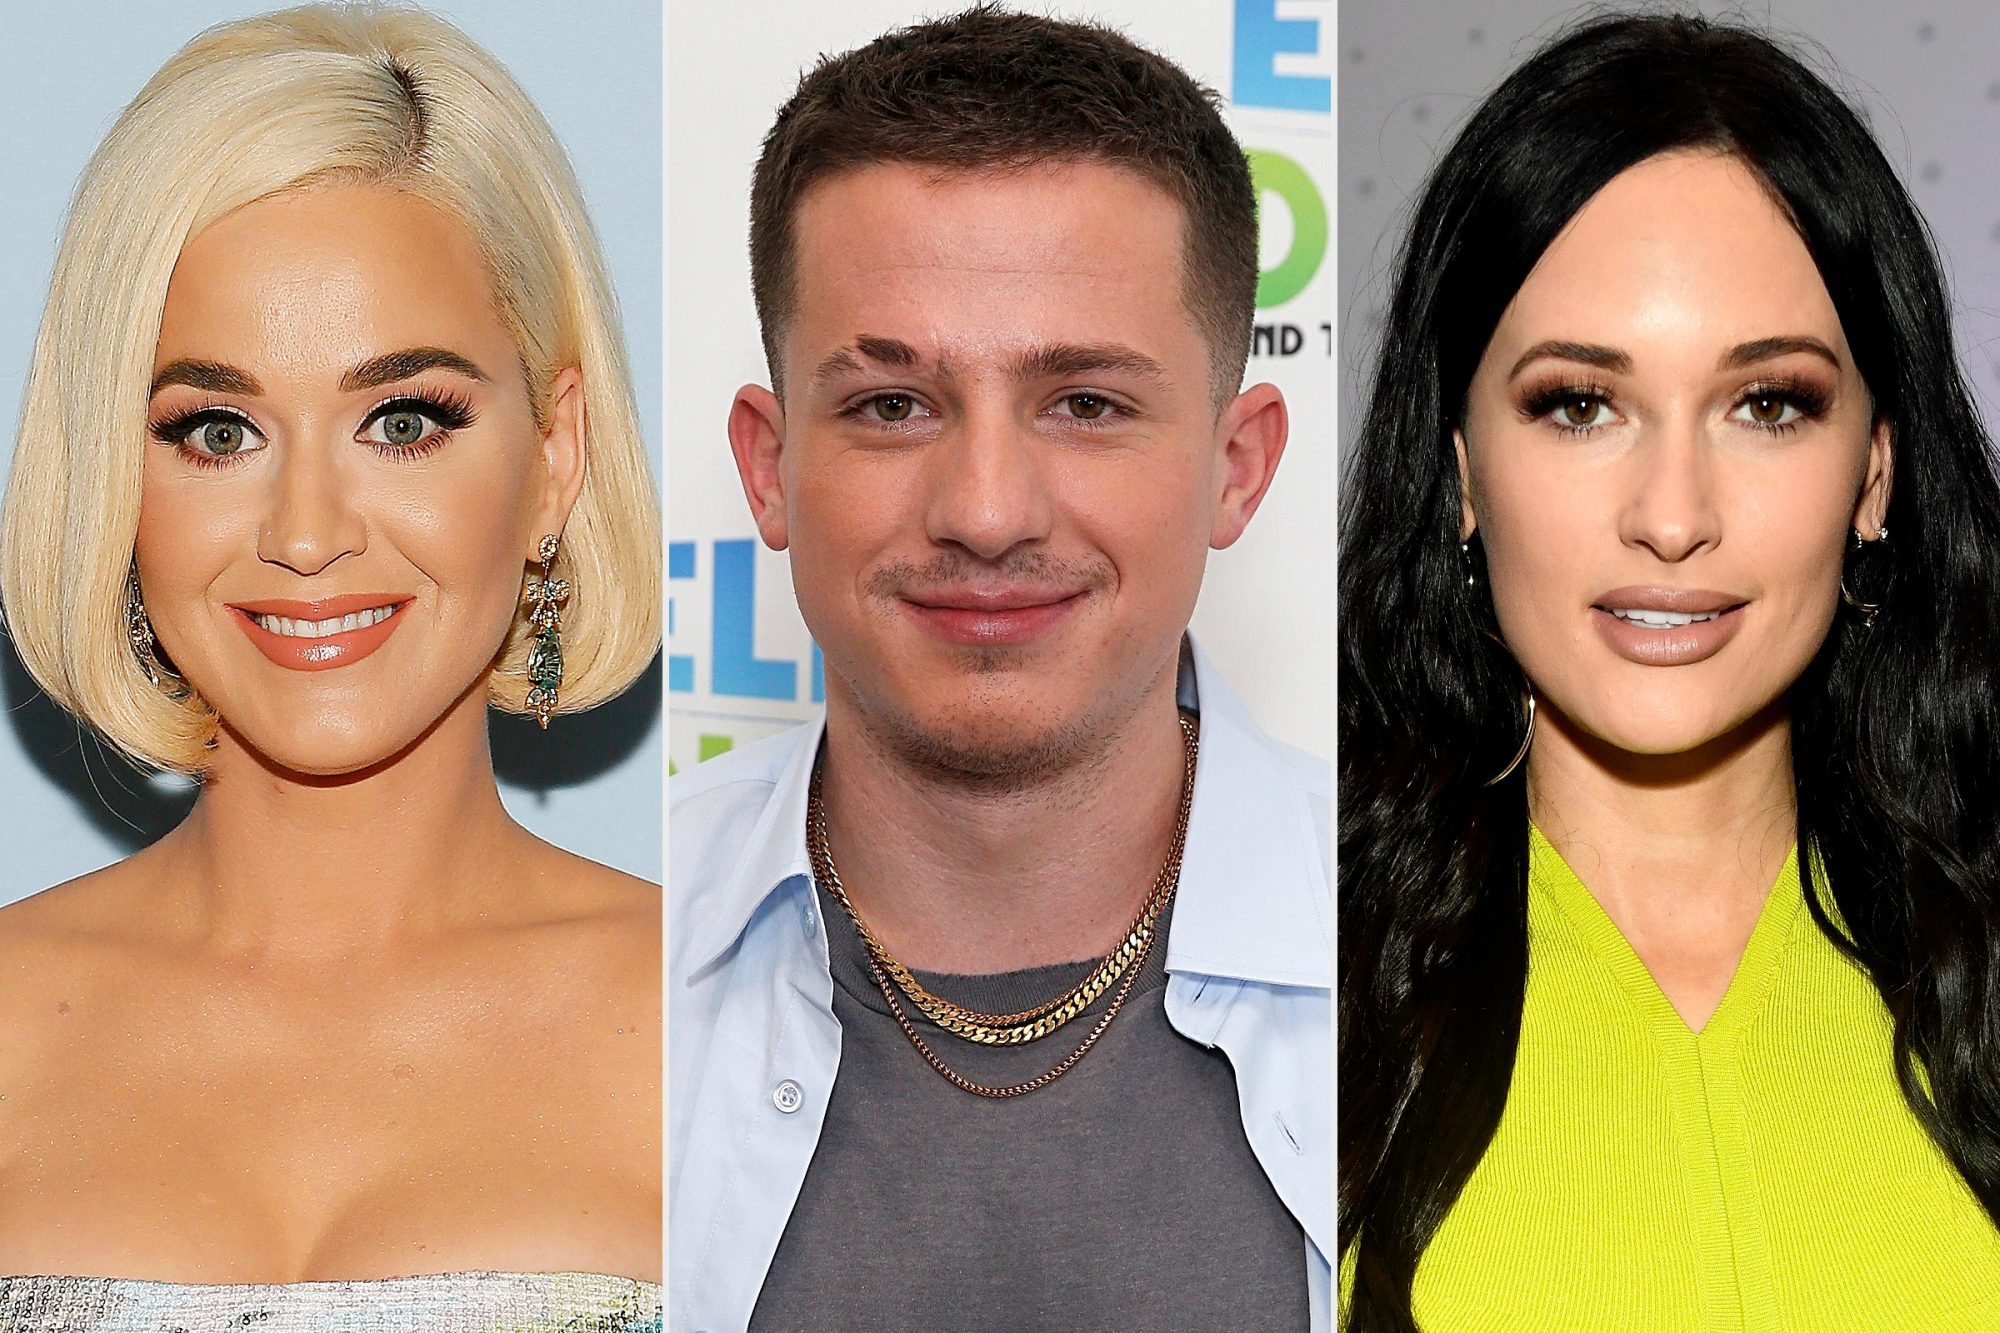 Katy Perry, Charlie Puth, Kacey Musgraves